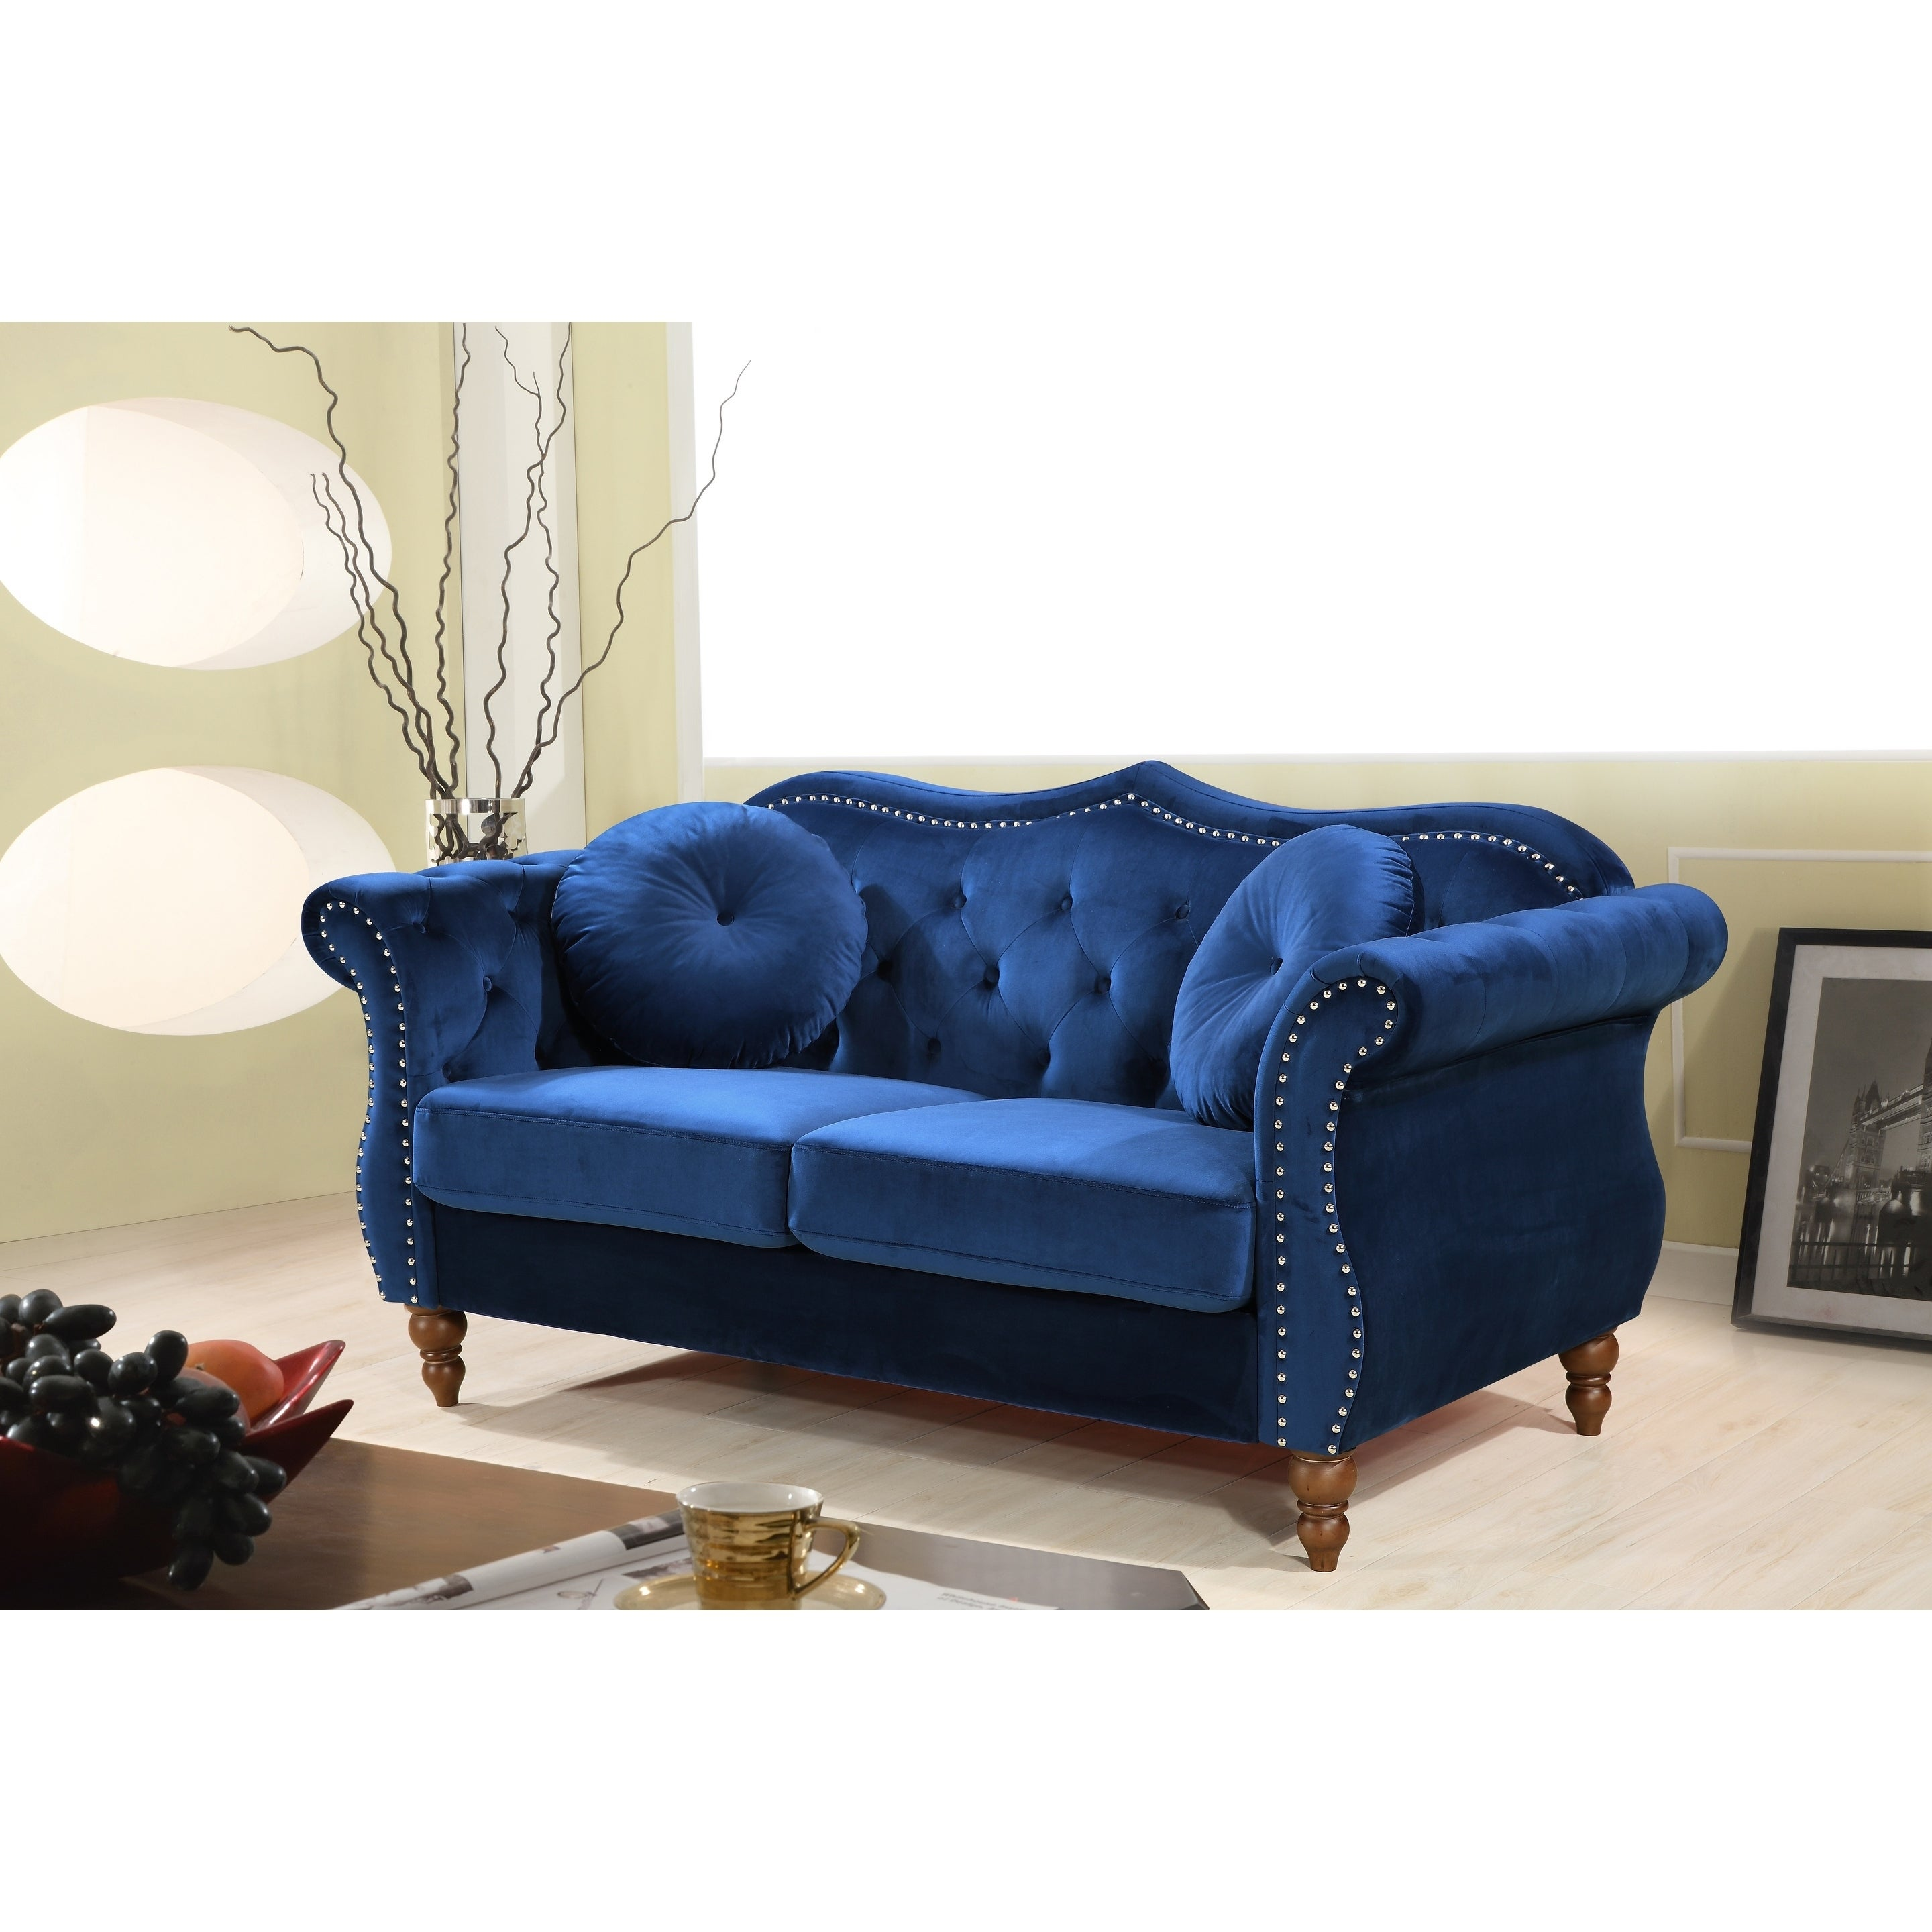 p furniture flaps loveseat square sofa premier and with protector puff tuck tailored plum pillow protectors